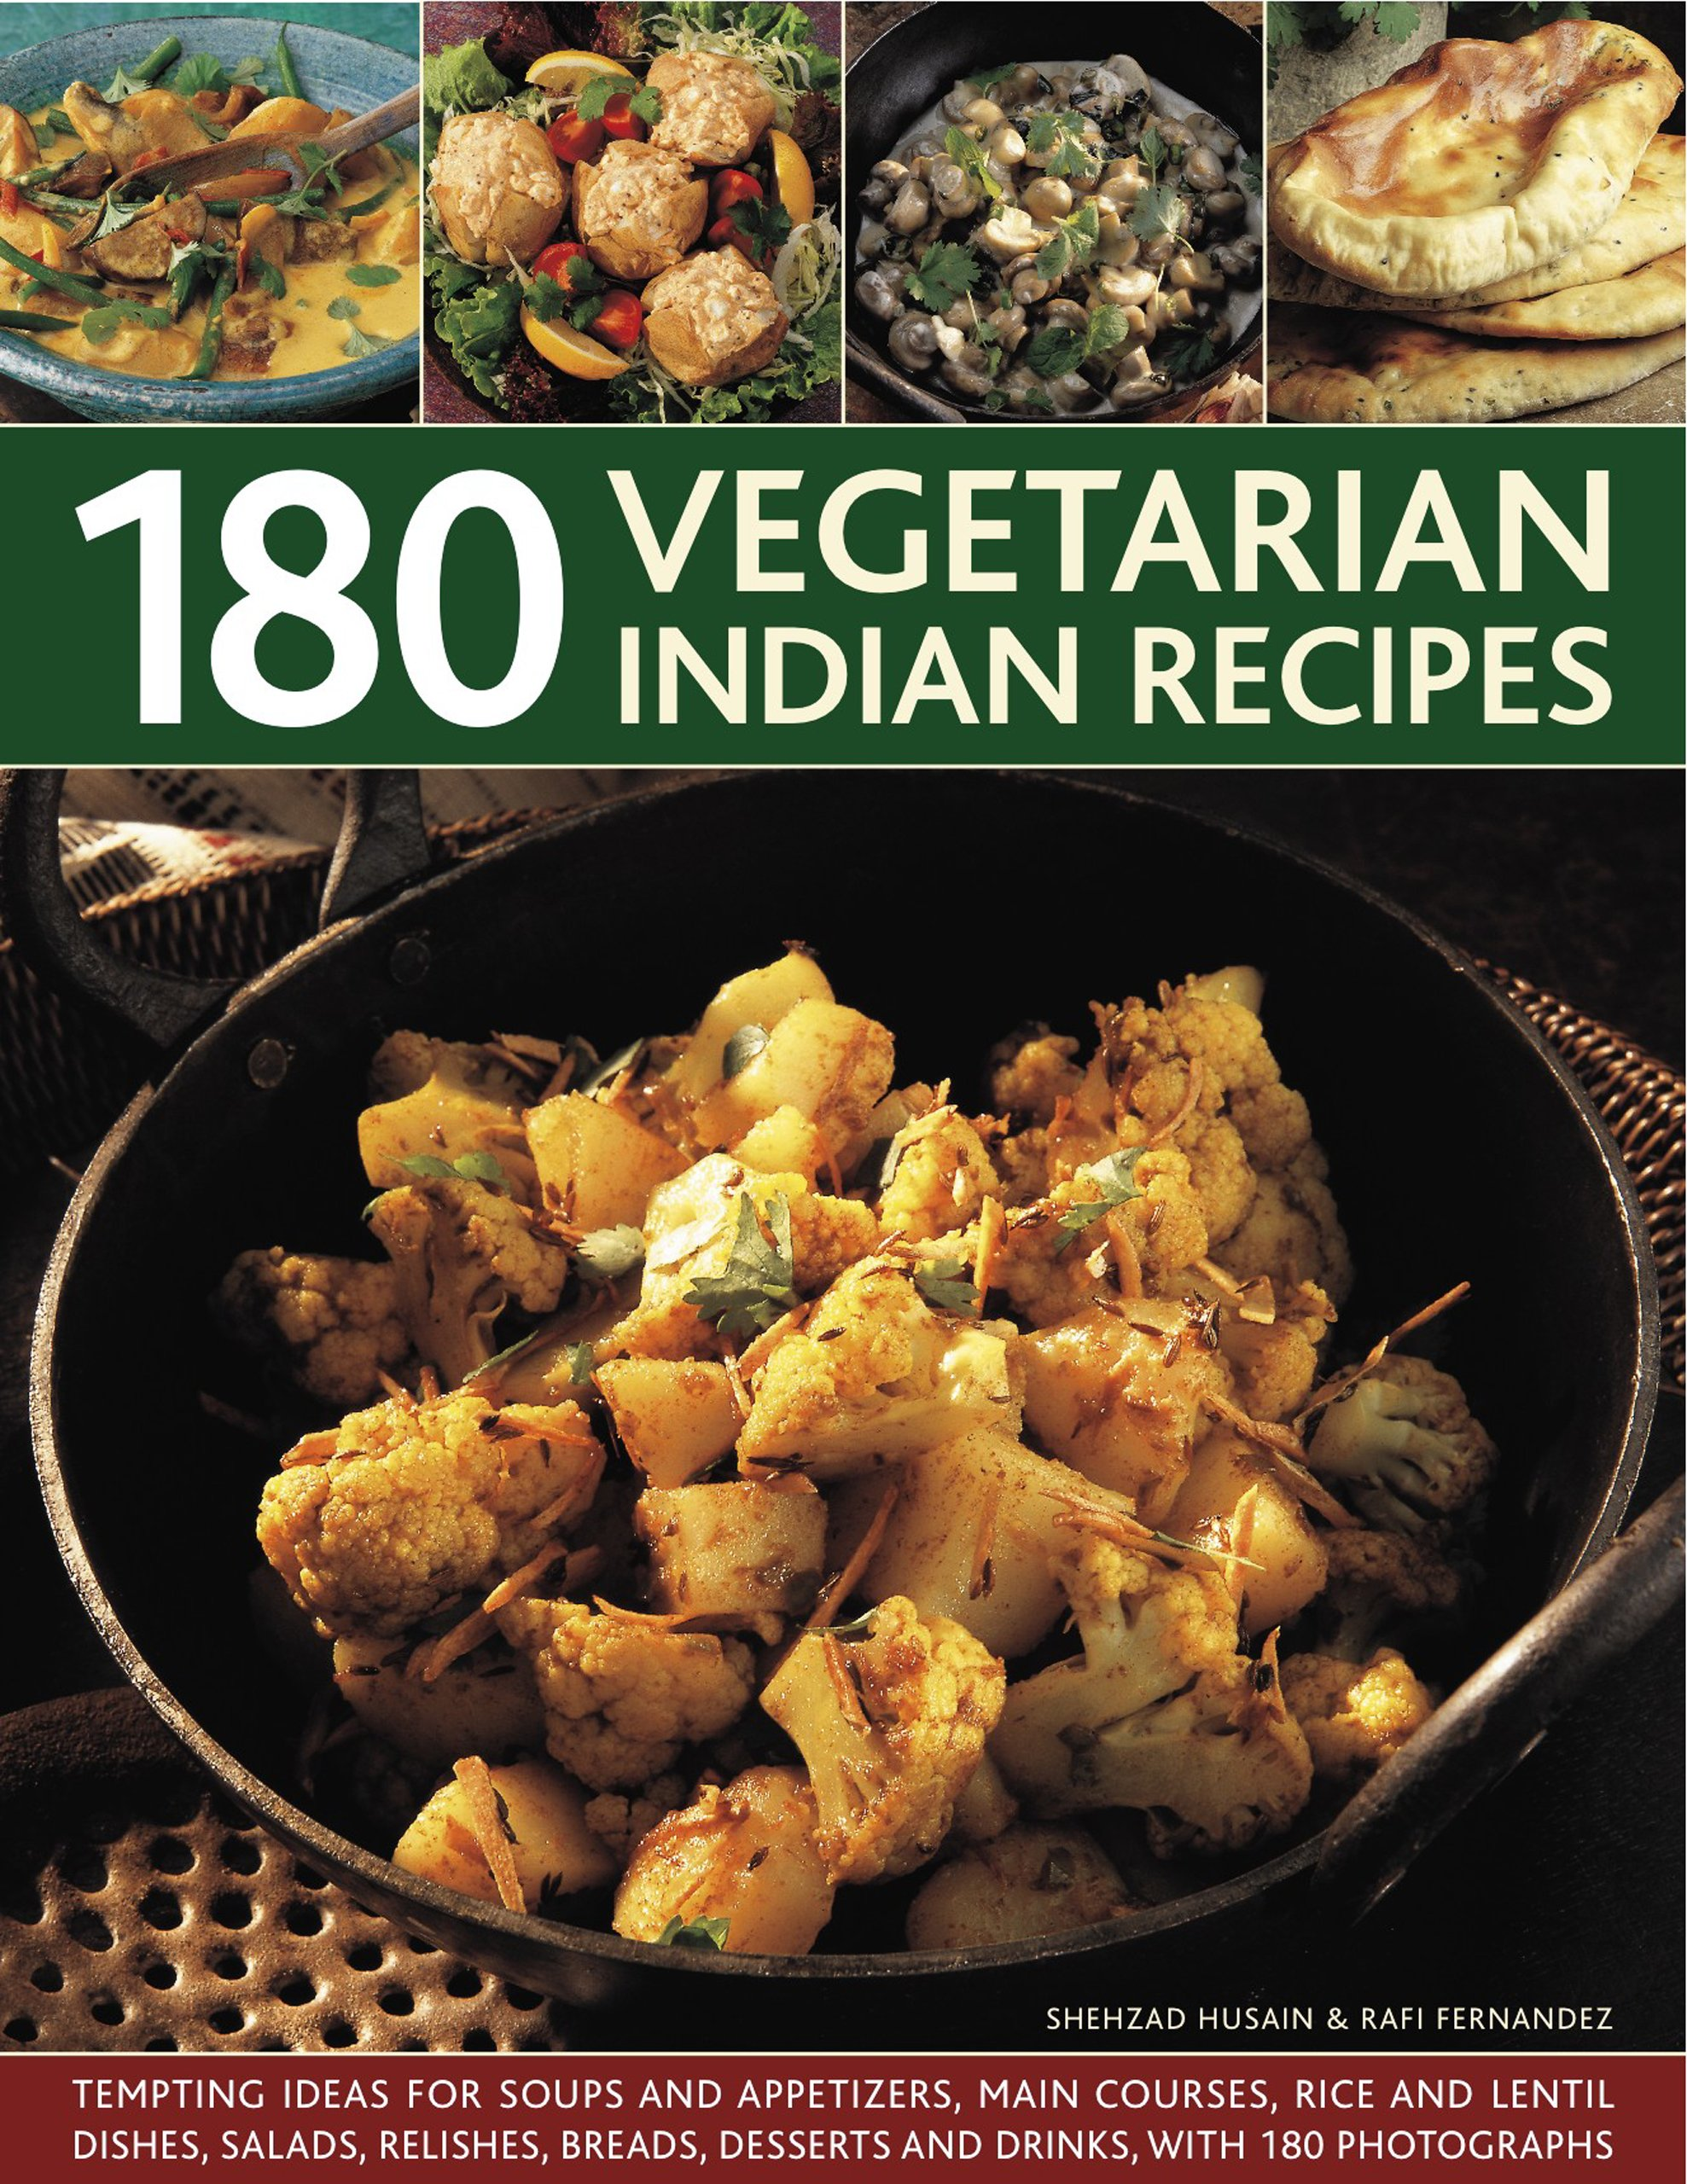 180 vegetarian indian recipes tempting ideas for soups and 180 vegetarian indian recipes tempting ideas for soups and appetizers main courses rice and lentil dishes salads relishes breads desserts and drinks forumfinder Choice Image